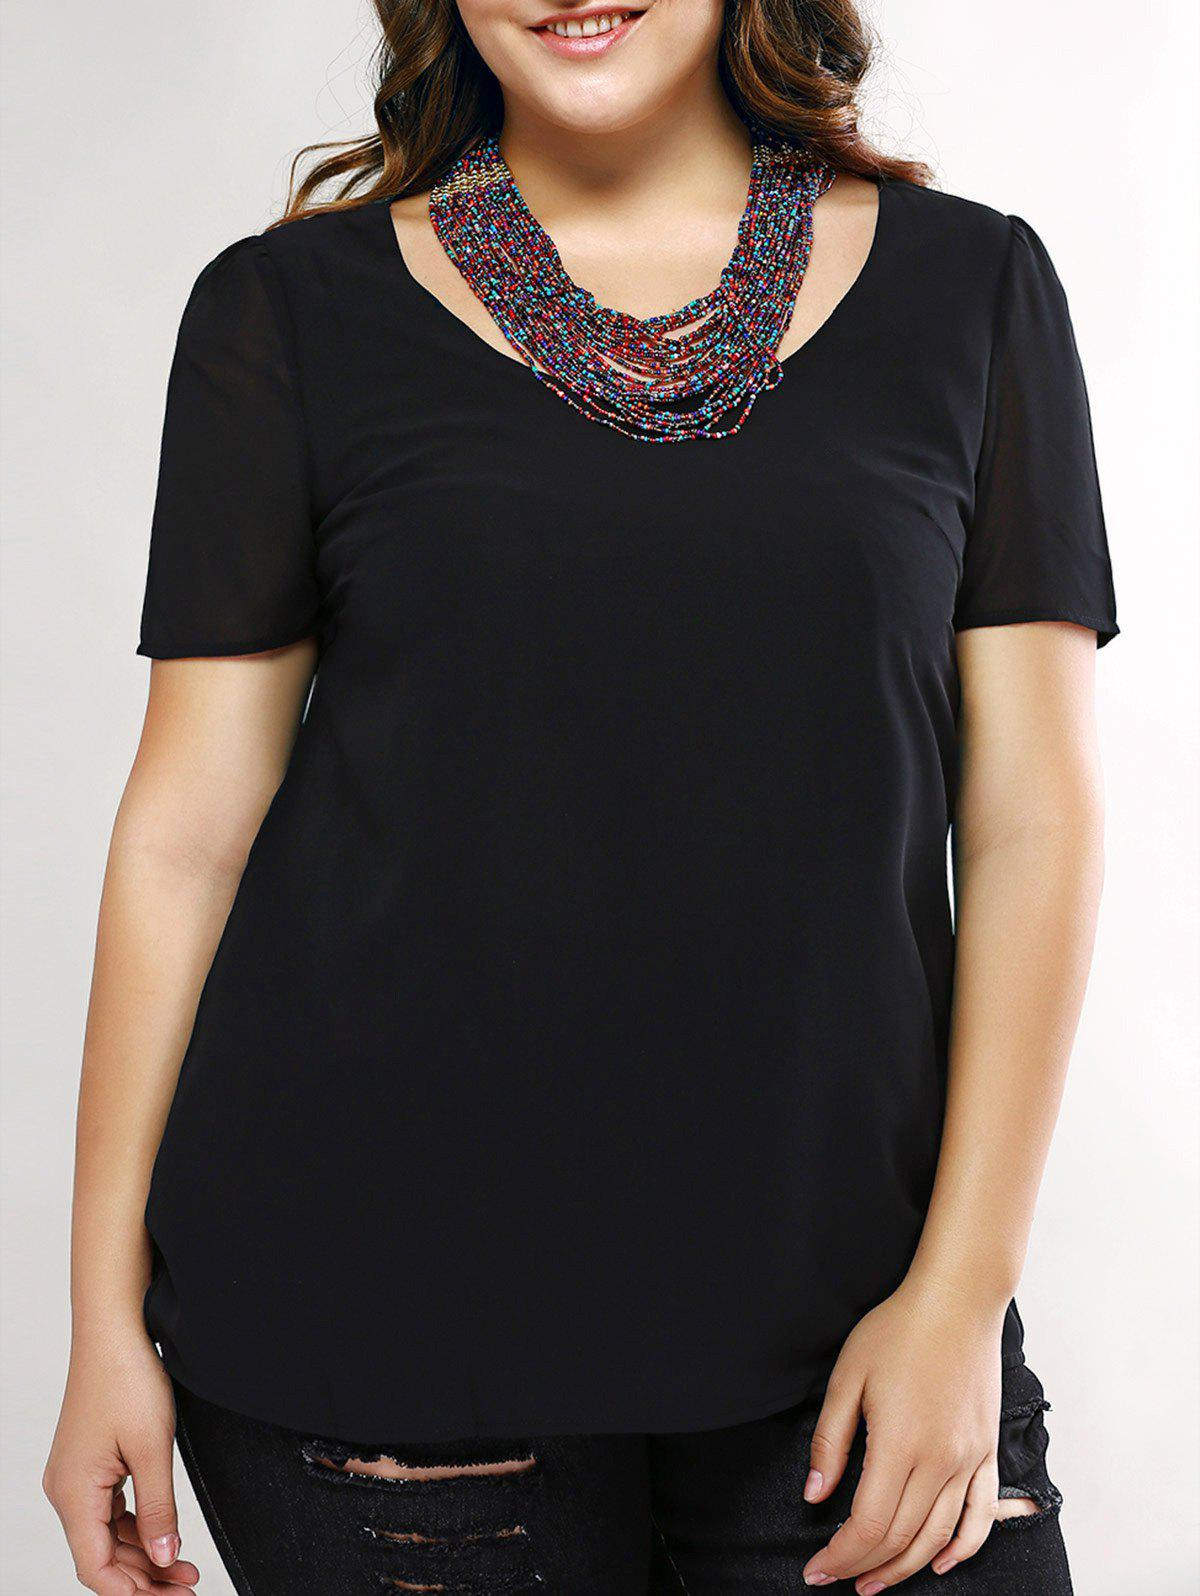 Plus Size Trendy Cut Out Black Blouse - BLACK L